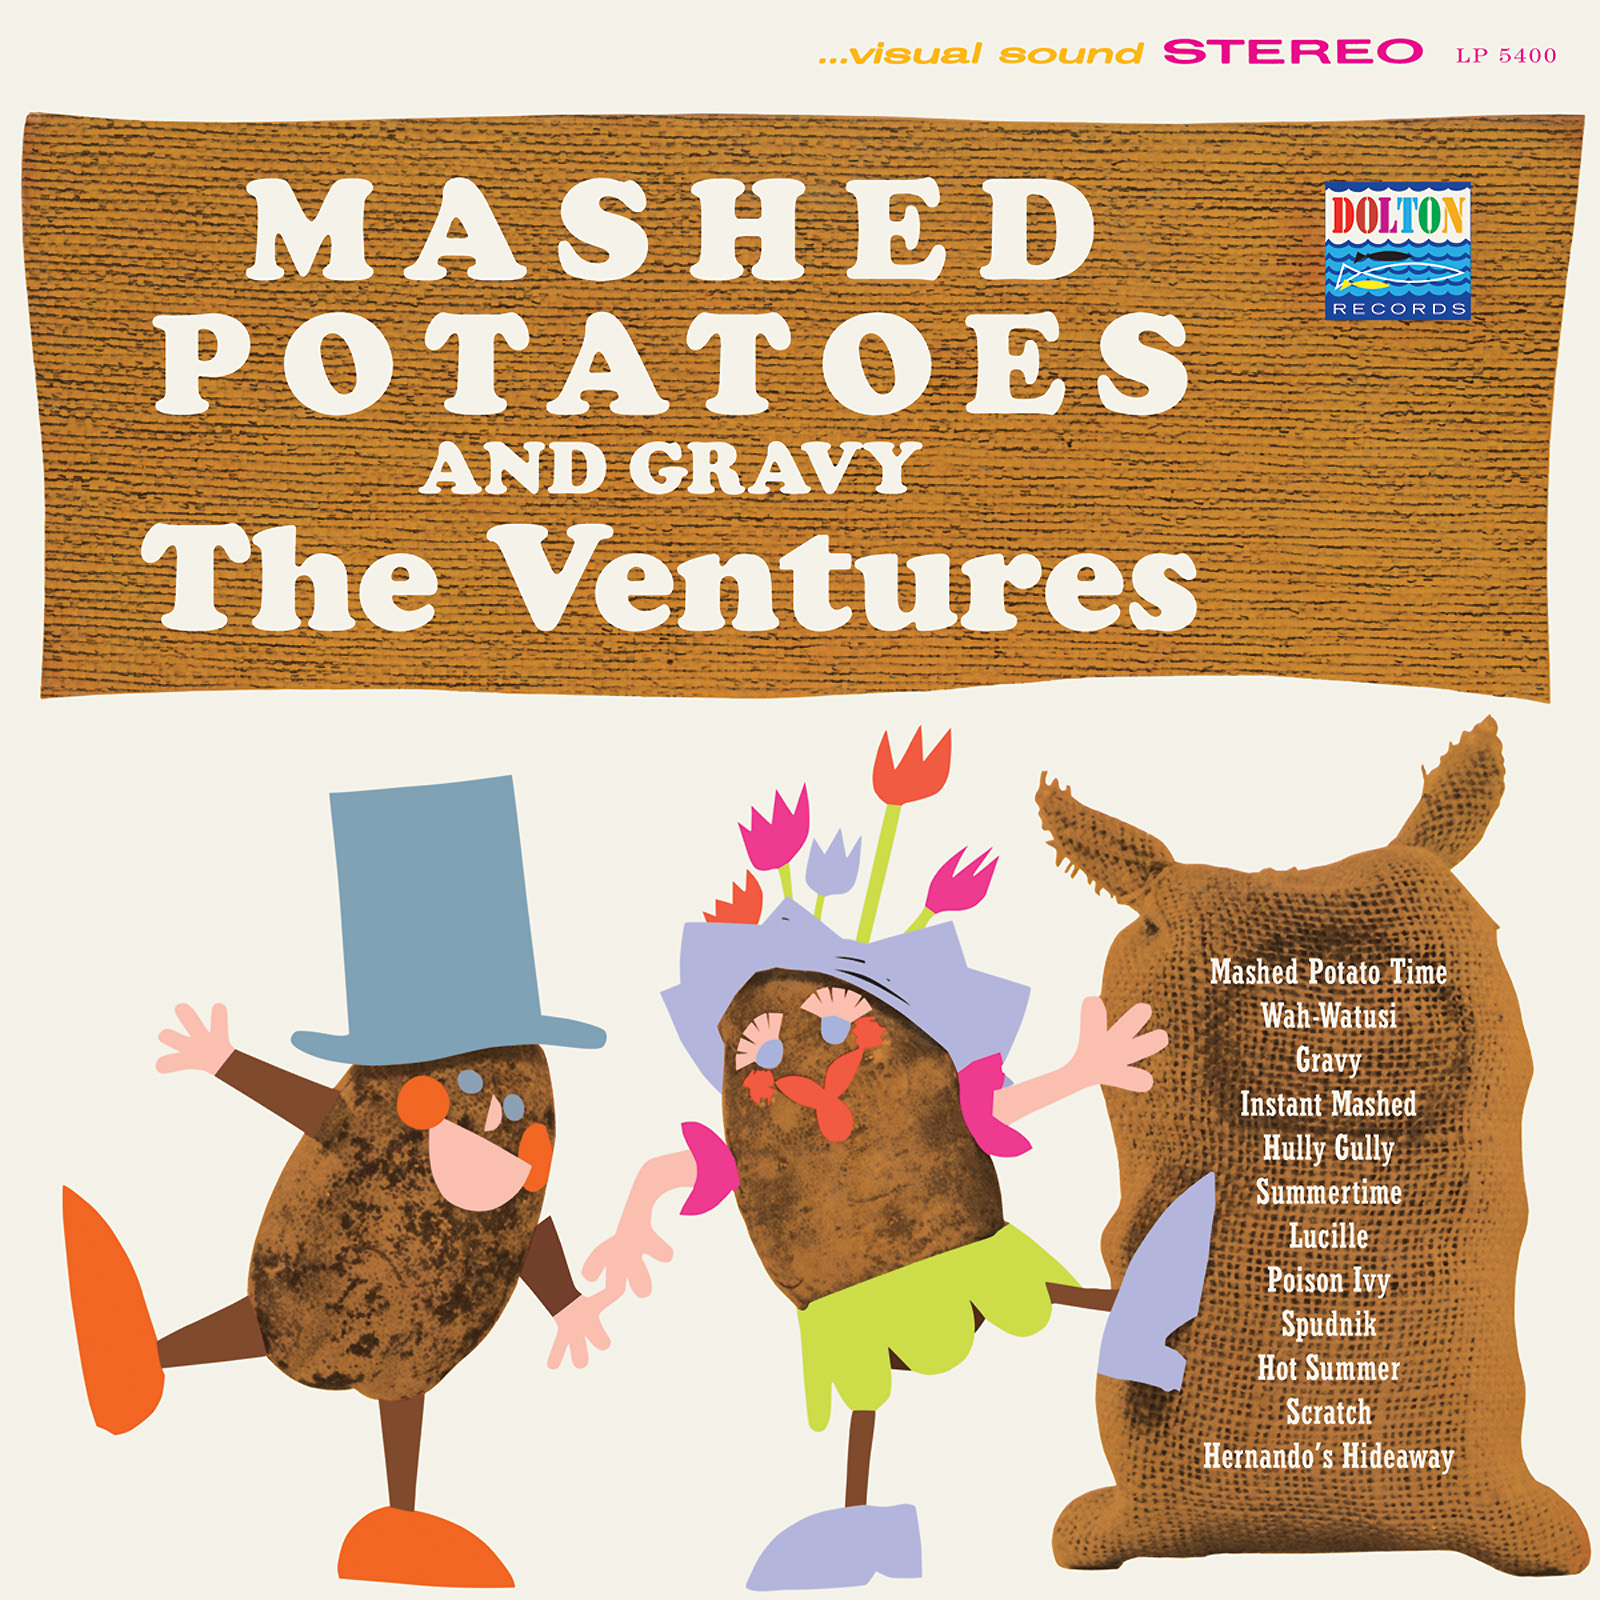 Ventures, The - Mashed Potatoes and Gravy LIMITED EDITION Colored Vinyl LP